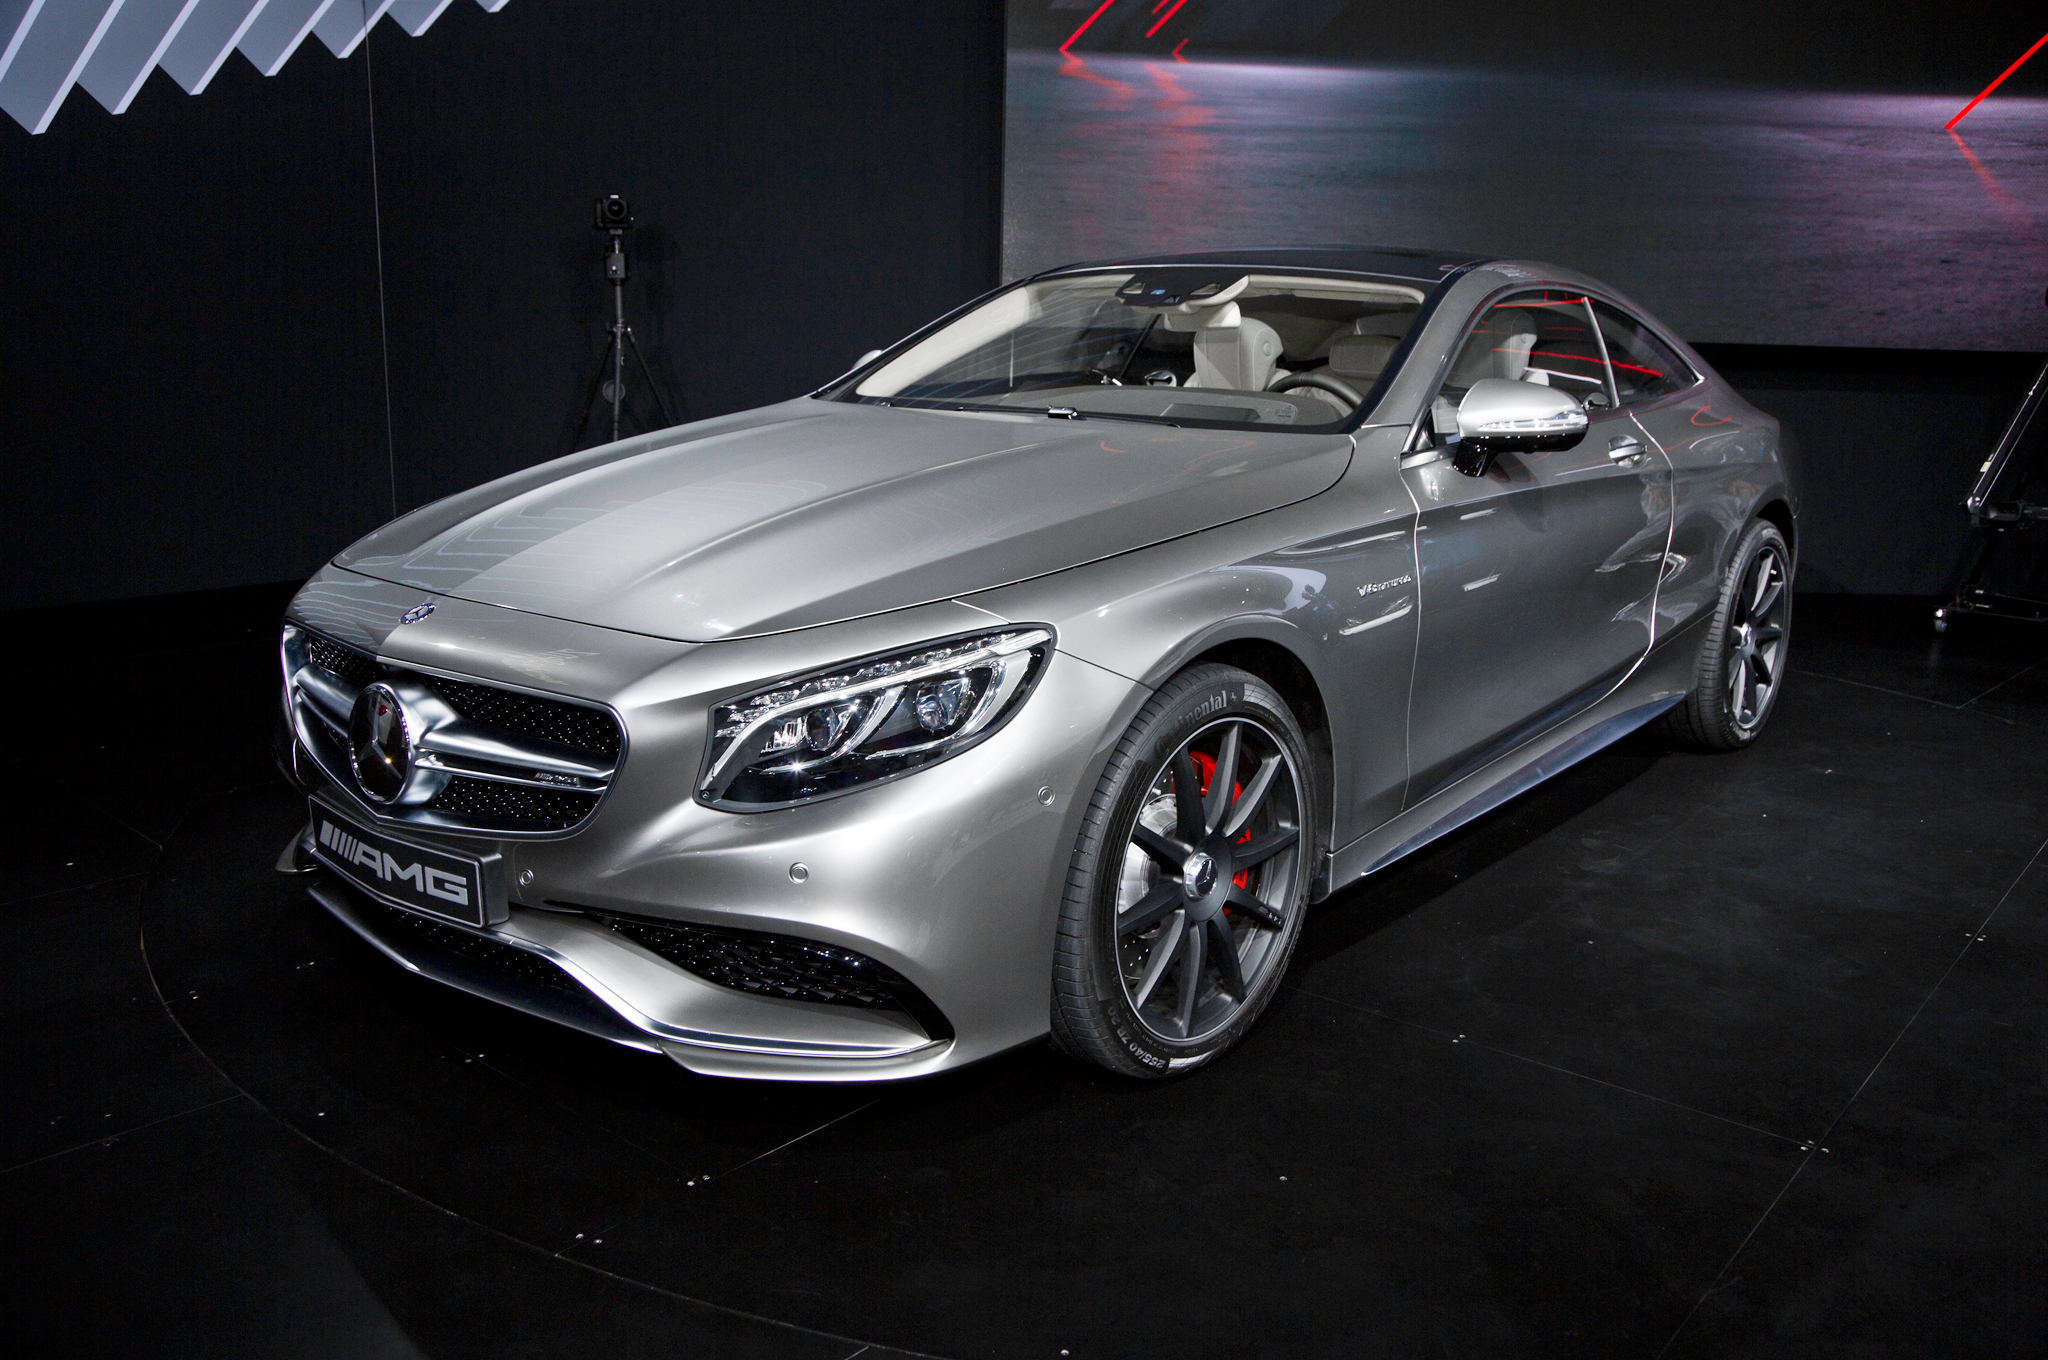 2014 mercedes benz s63 amg 4matic coupe mercedes benz for Mercedes benz s63 2014 price